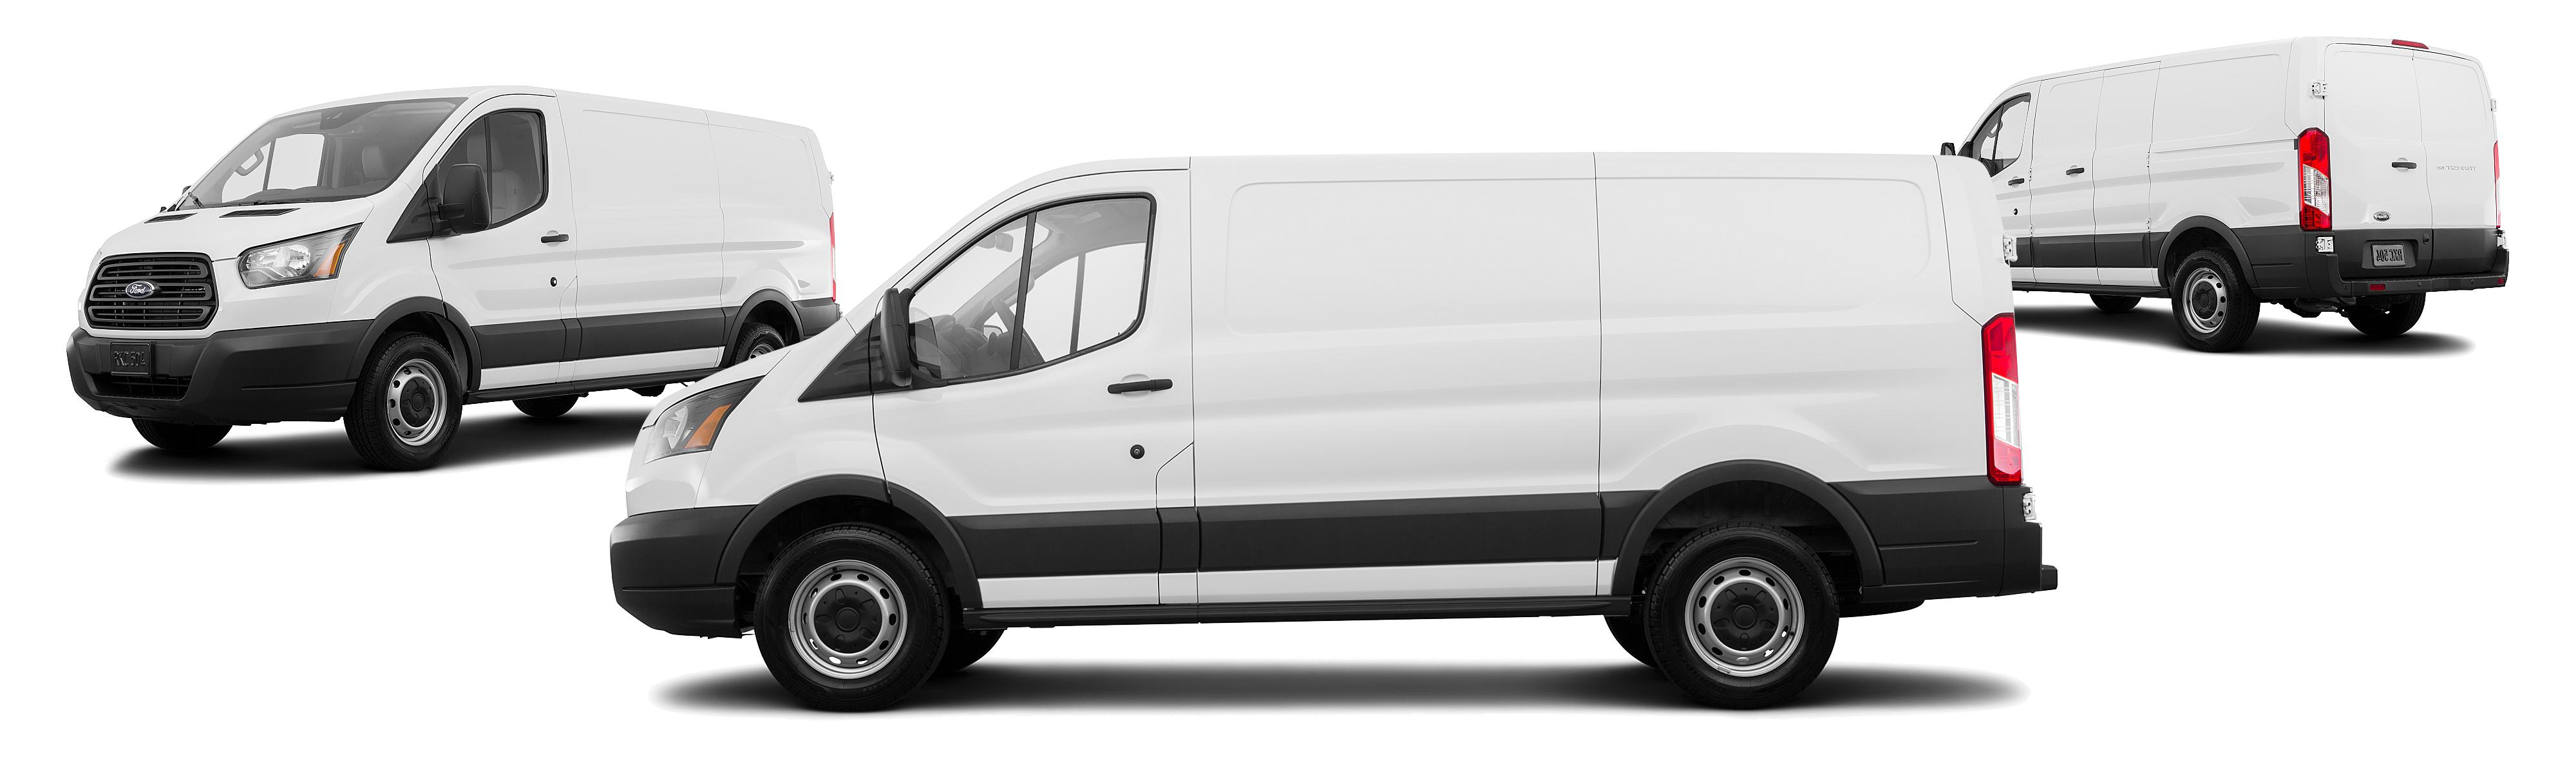 103cf85360 2017 Ford Transit Cargo 150 3dr LWB Low Roof Cargo Van w 60 40 Passenger  Side Doors - Research - GrooveCar